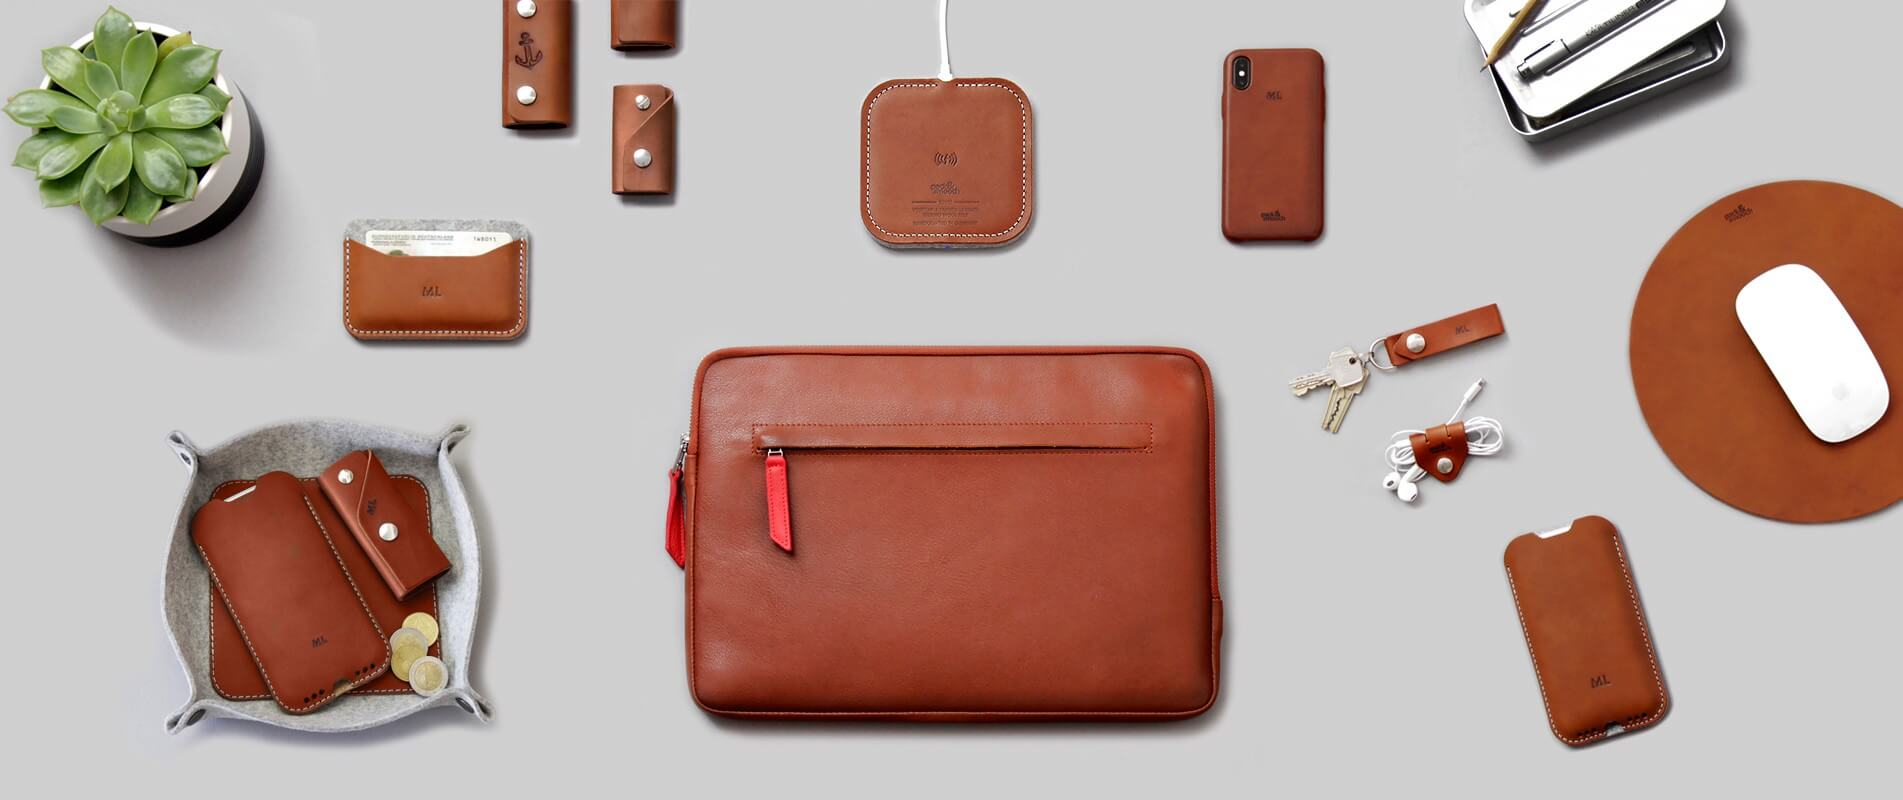 Pack & Smooch makes your tailor-made suit for high-quality Apple products